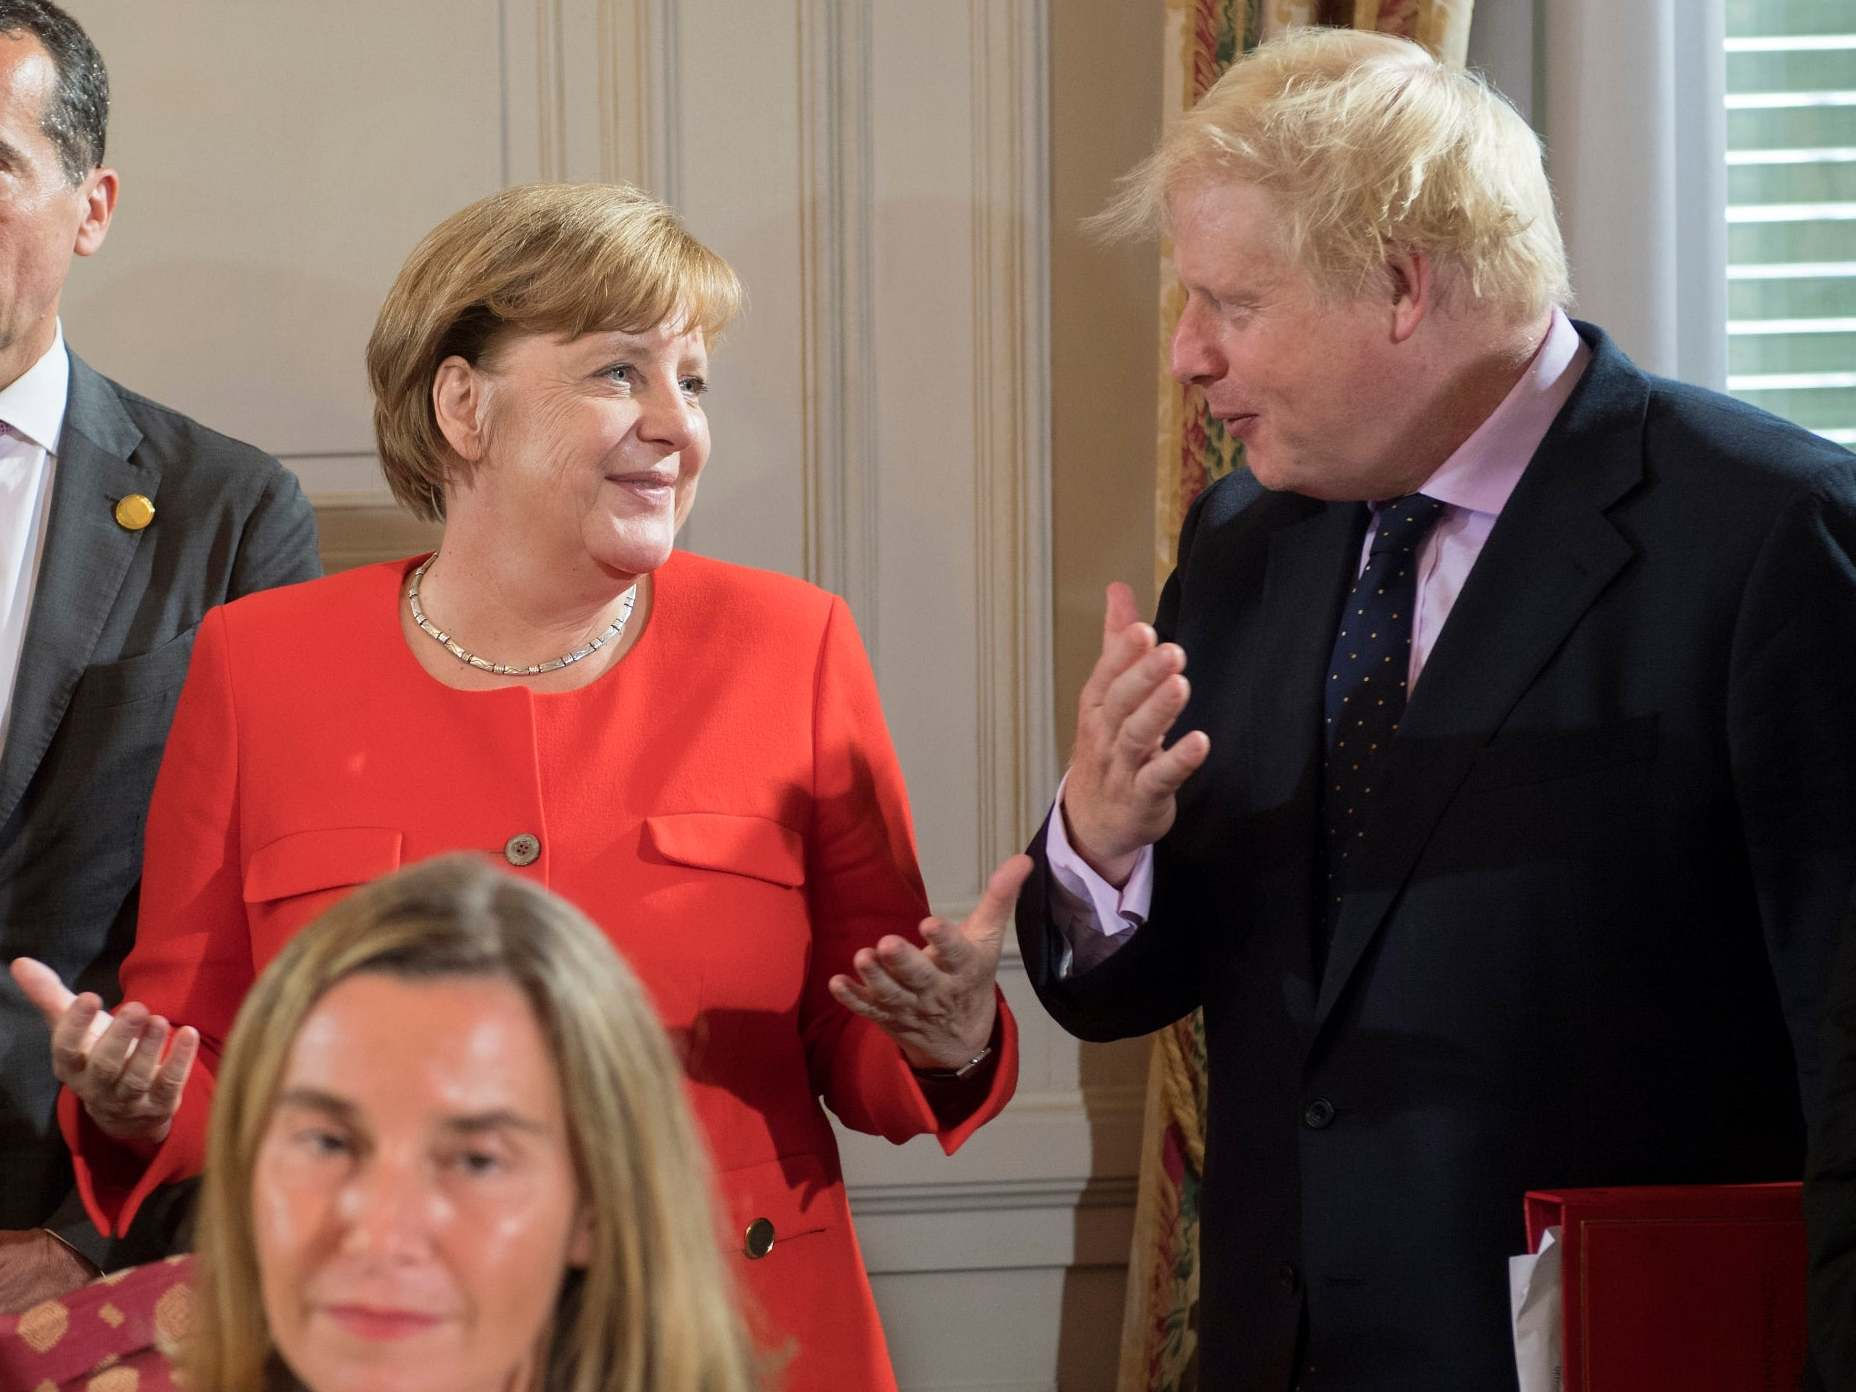 As he heads to Berlin, does Boris Johnson really want a deal? It barely matters this week